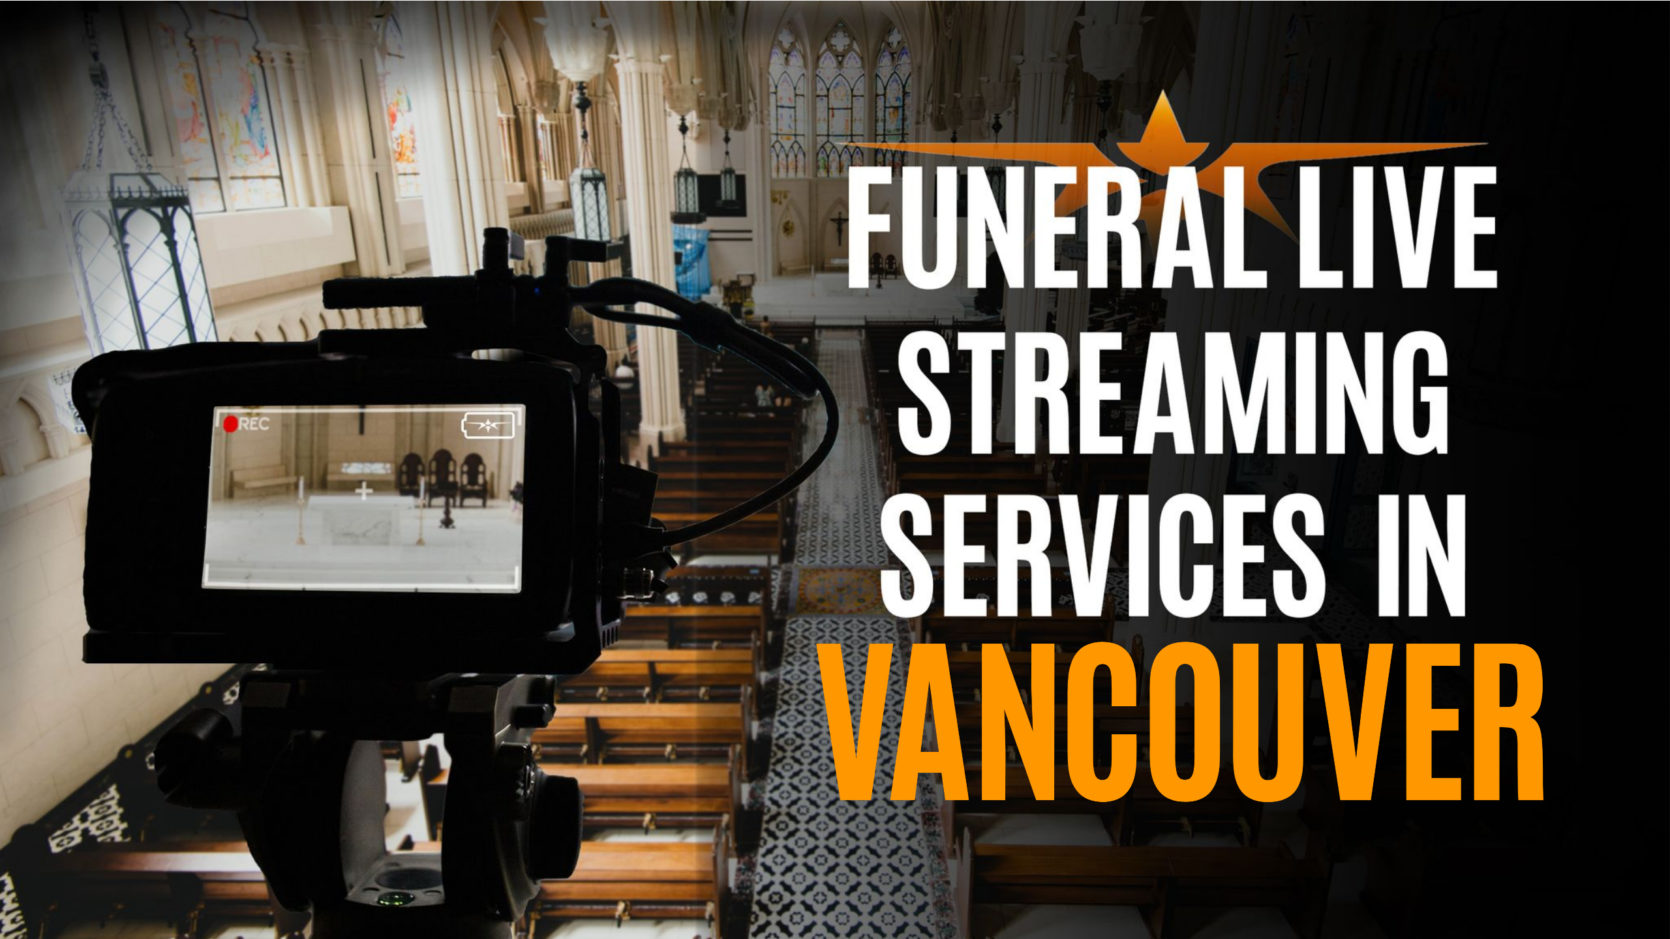 Funeral Live Streaming Services in Vancouver